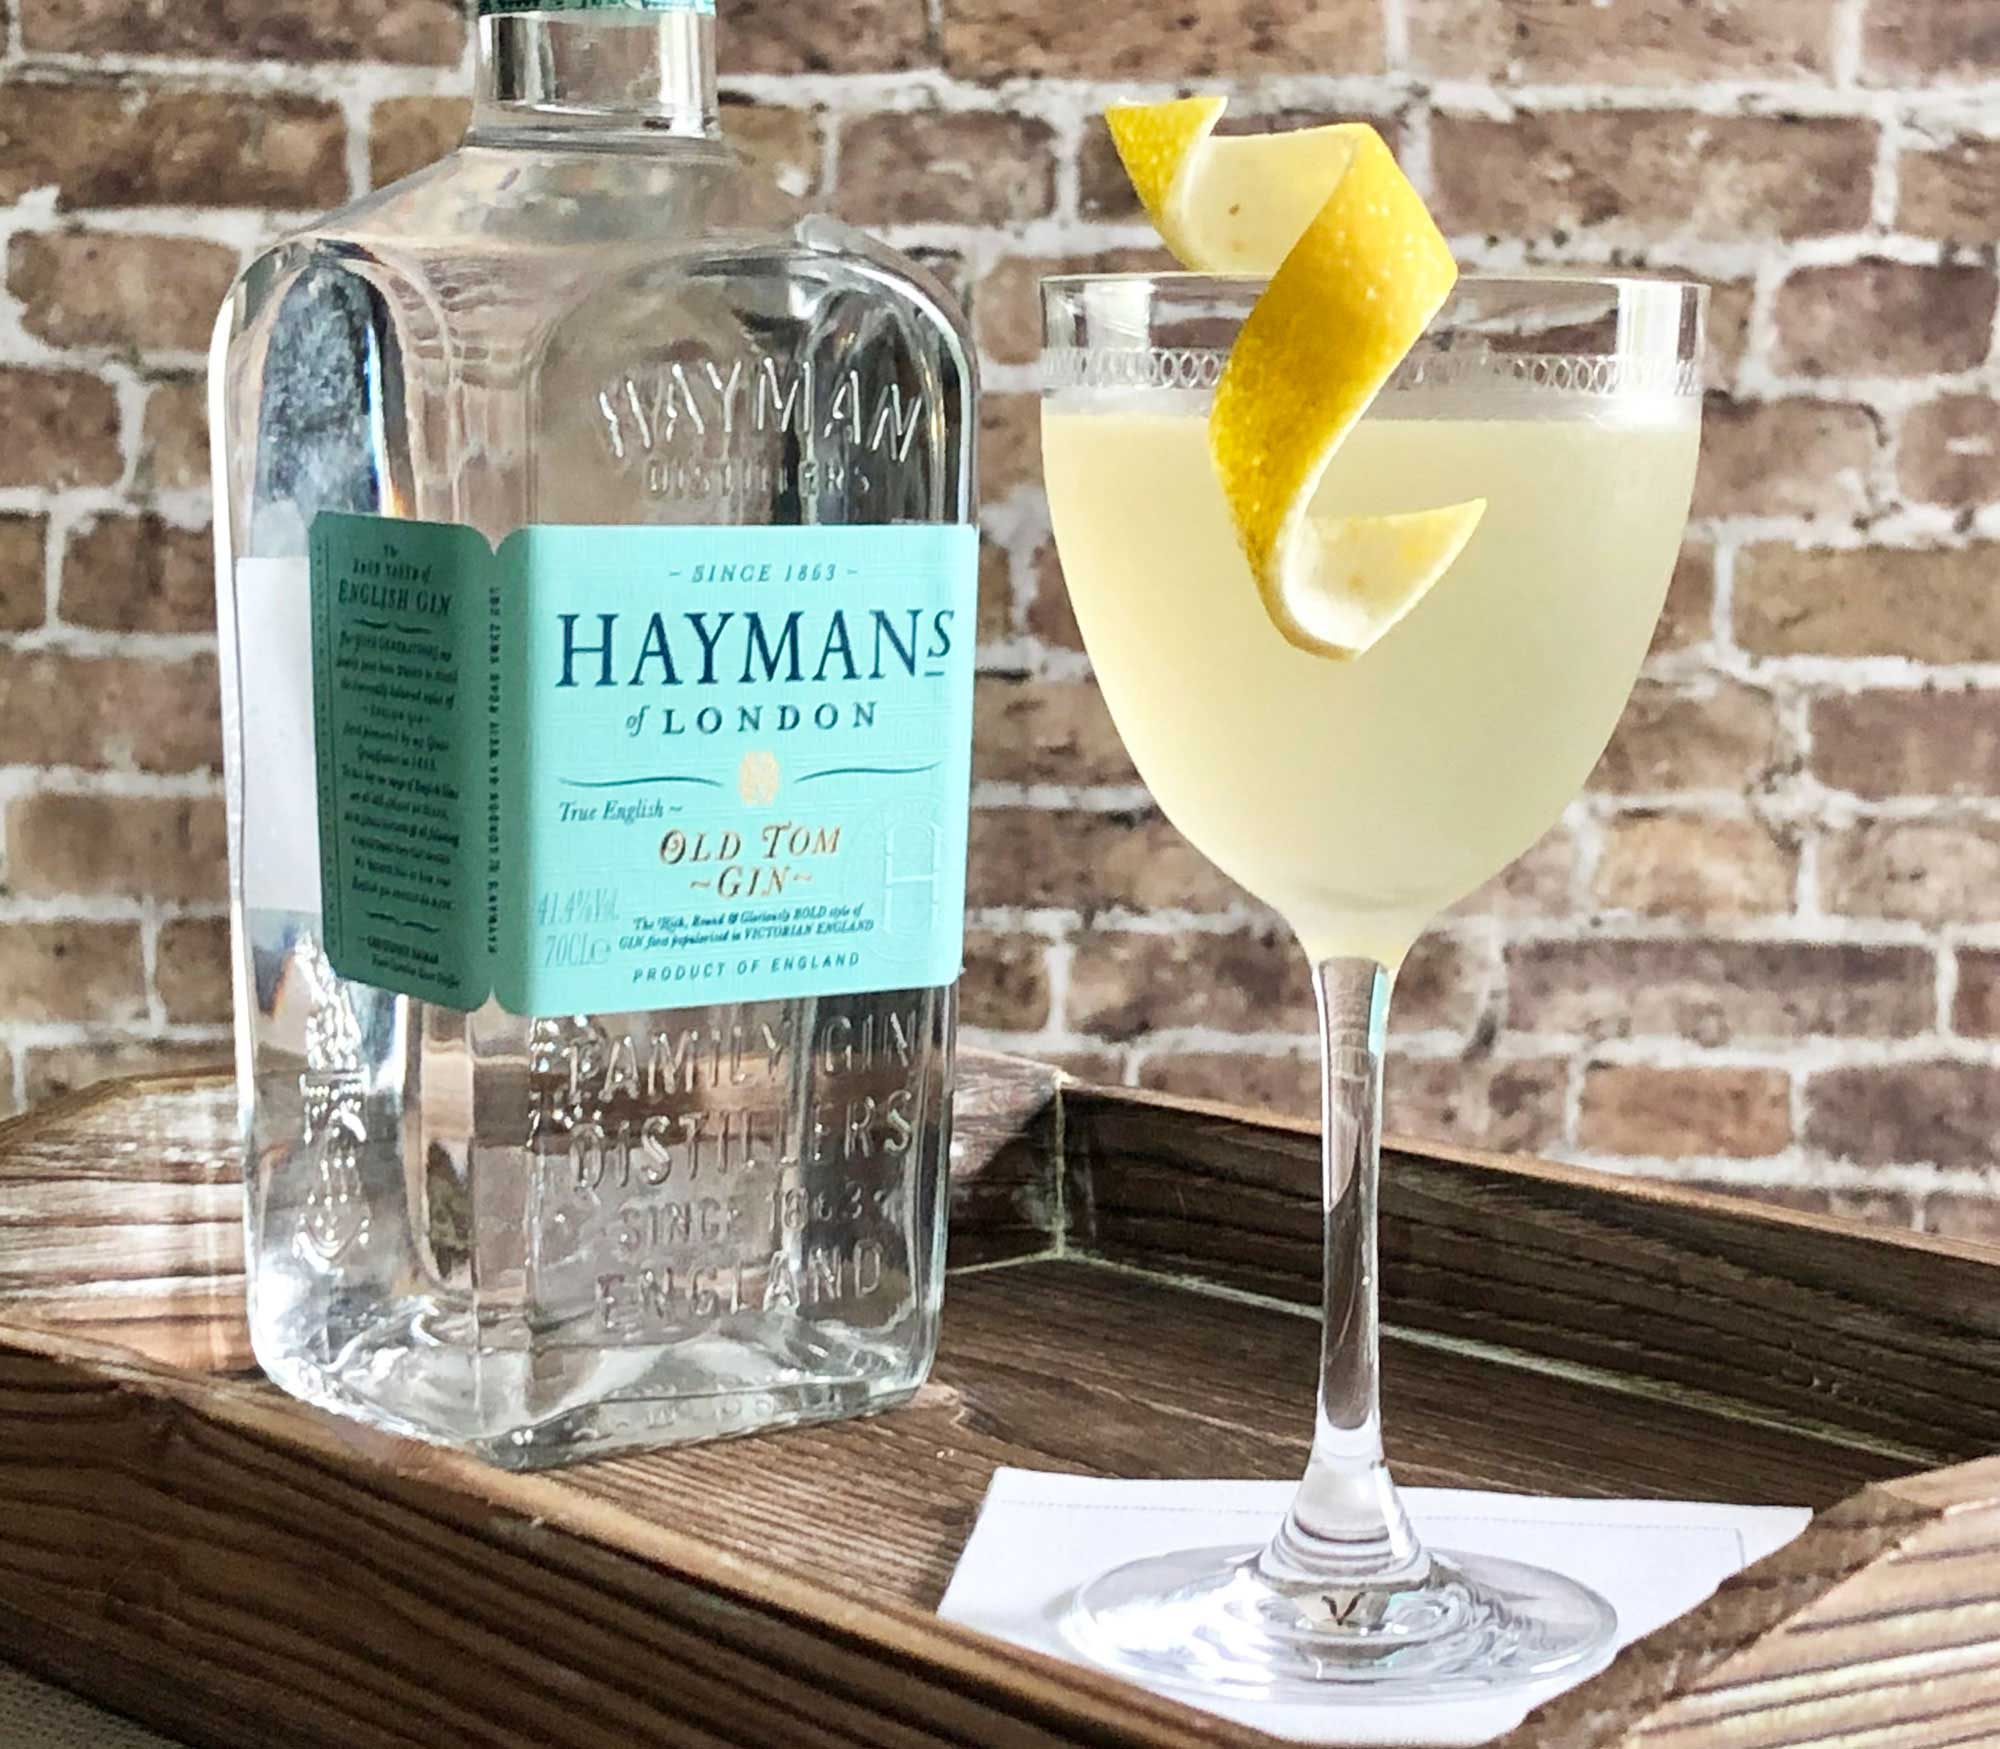 An example of the Resolute, the mixed drink (cocktail), by Savoy Cocktail Book, featuring Hayman's Old Tom Gin, Rothman & Winter Orchard Apricot Liqueur, lemon juice, and simple syrup; photo by Lee Edwards